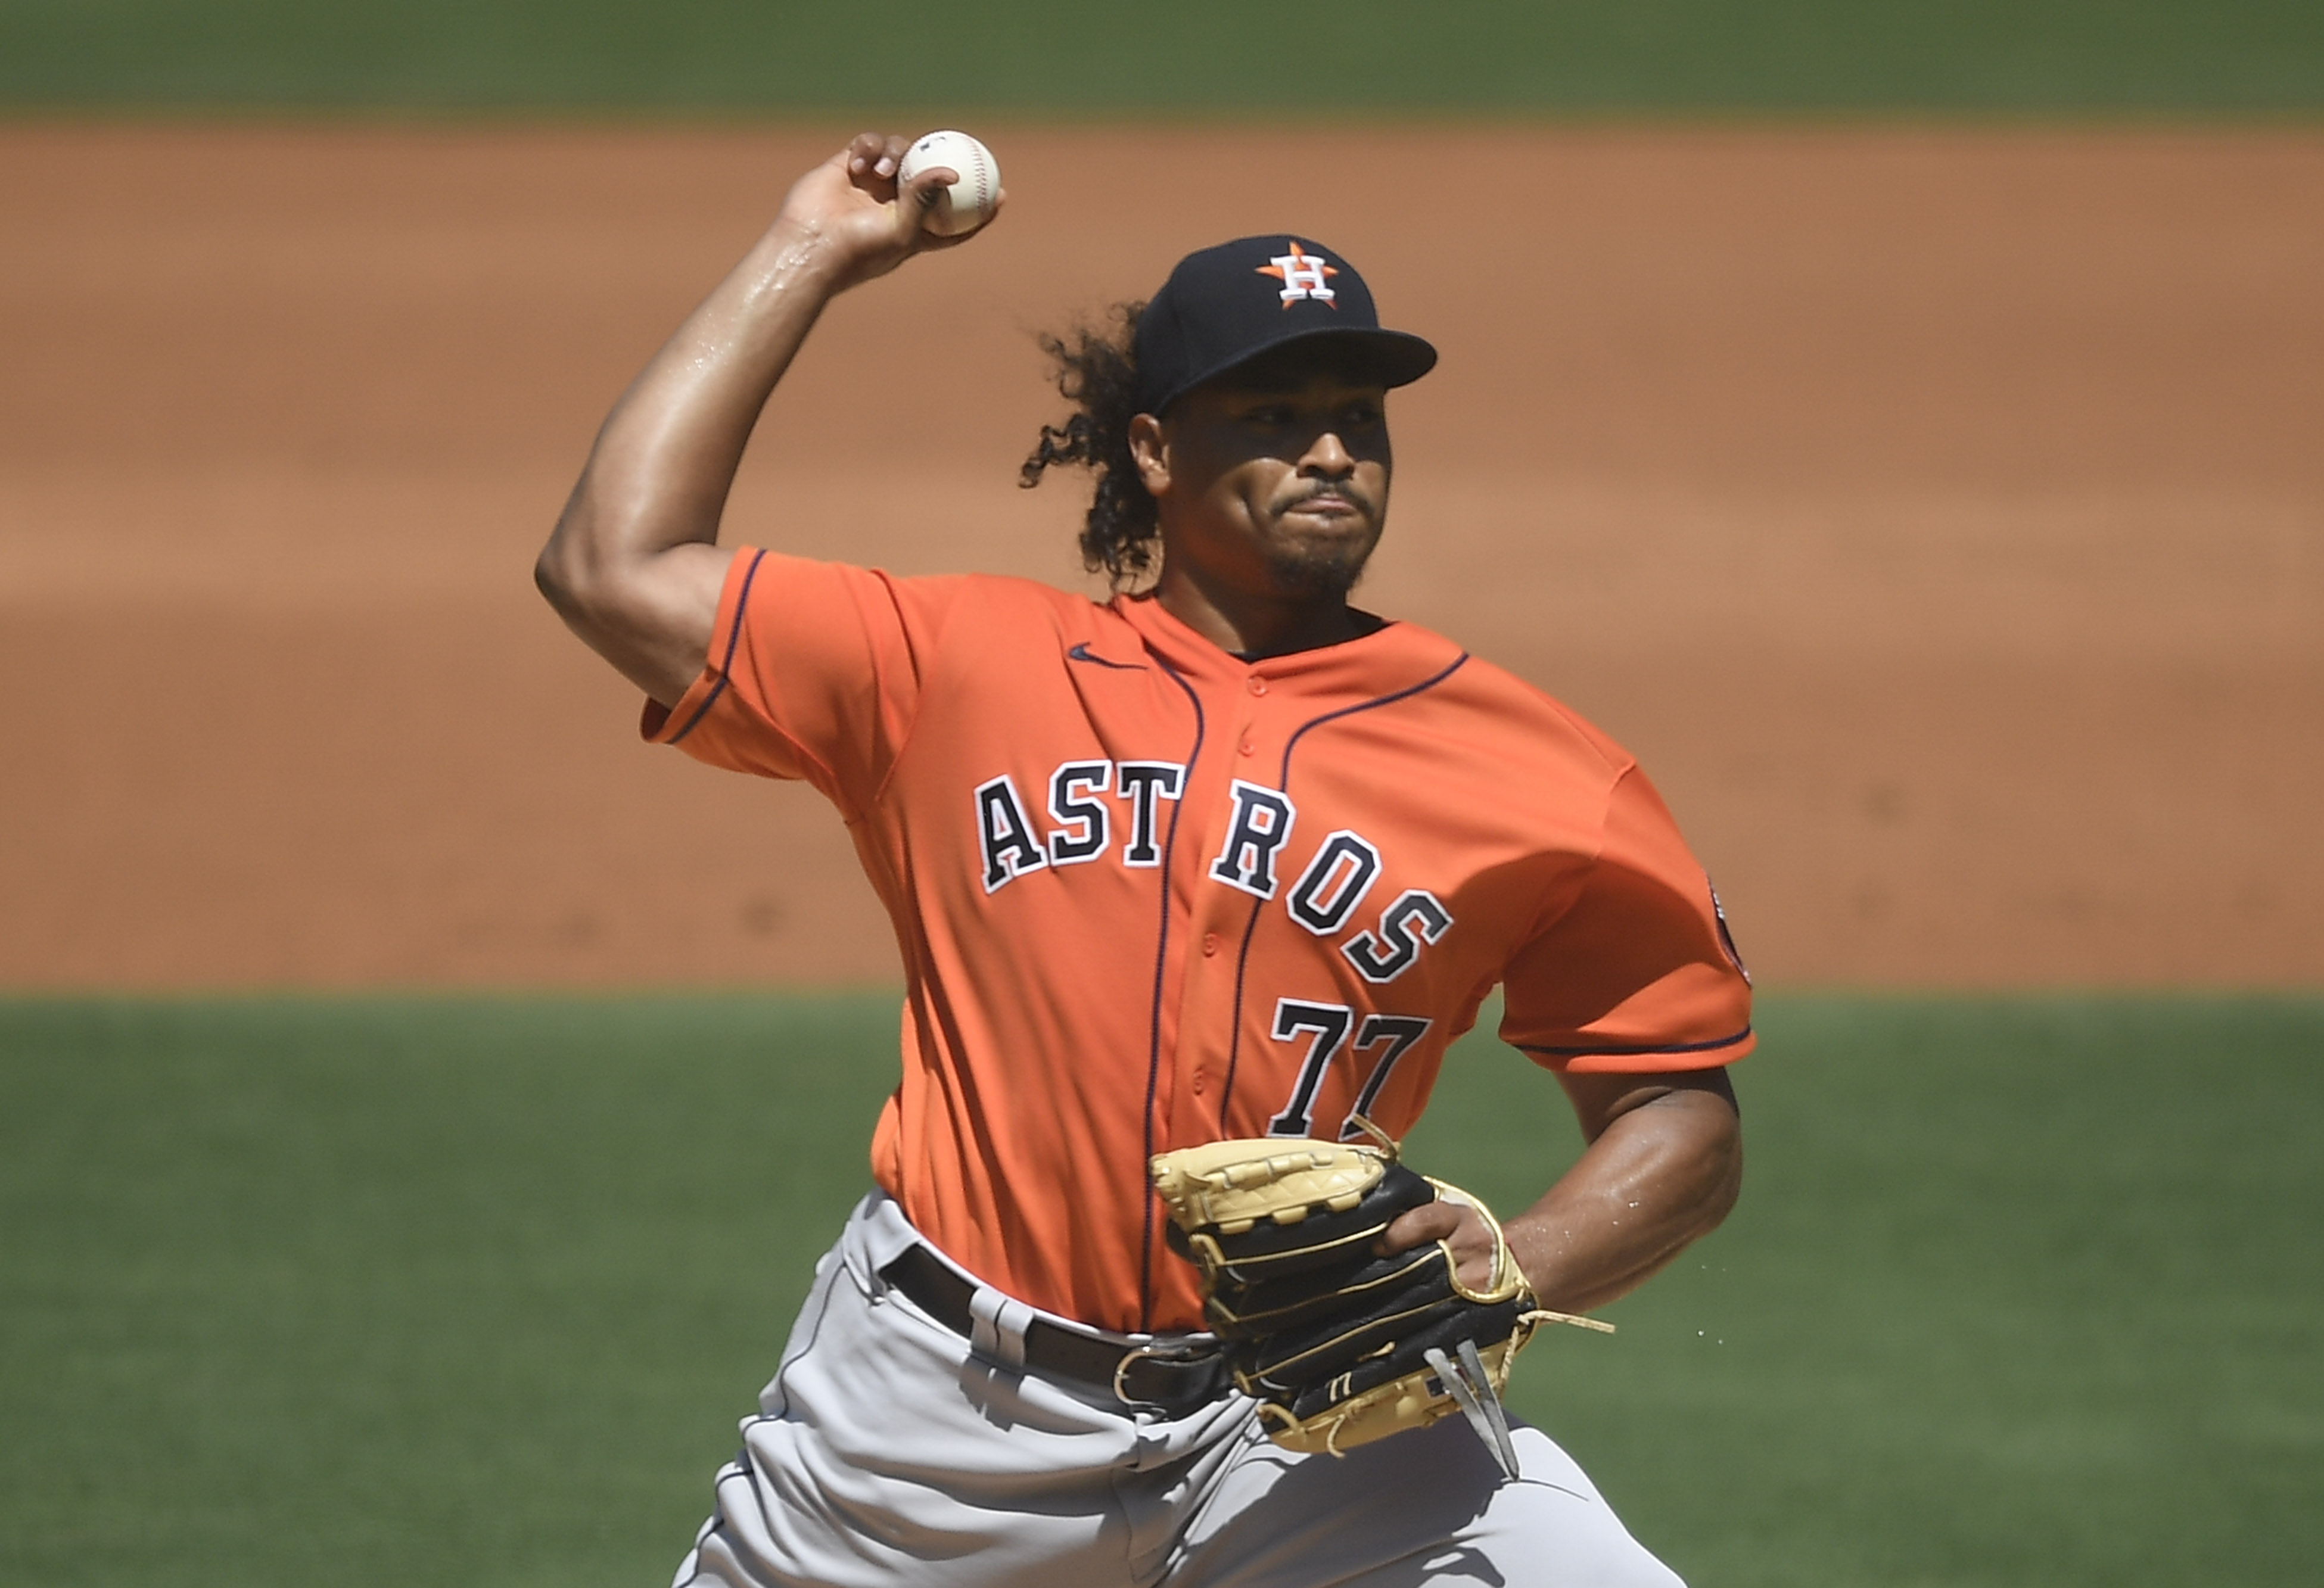 Luis Garcia of the Houston Astros pitches during the second inning of a baseball game against San Diego Padres at Petco Park on September 5, 2021 in San Diego, California.